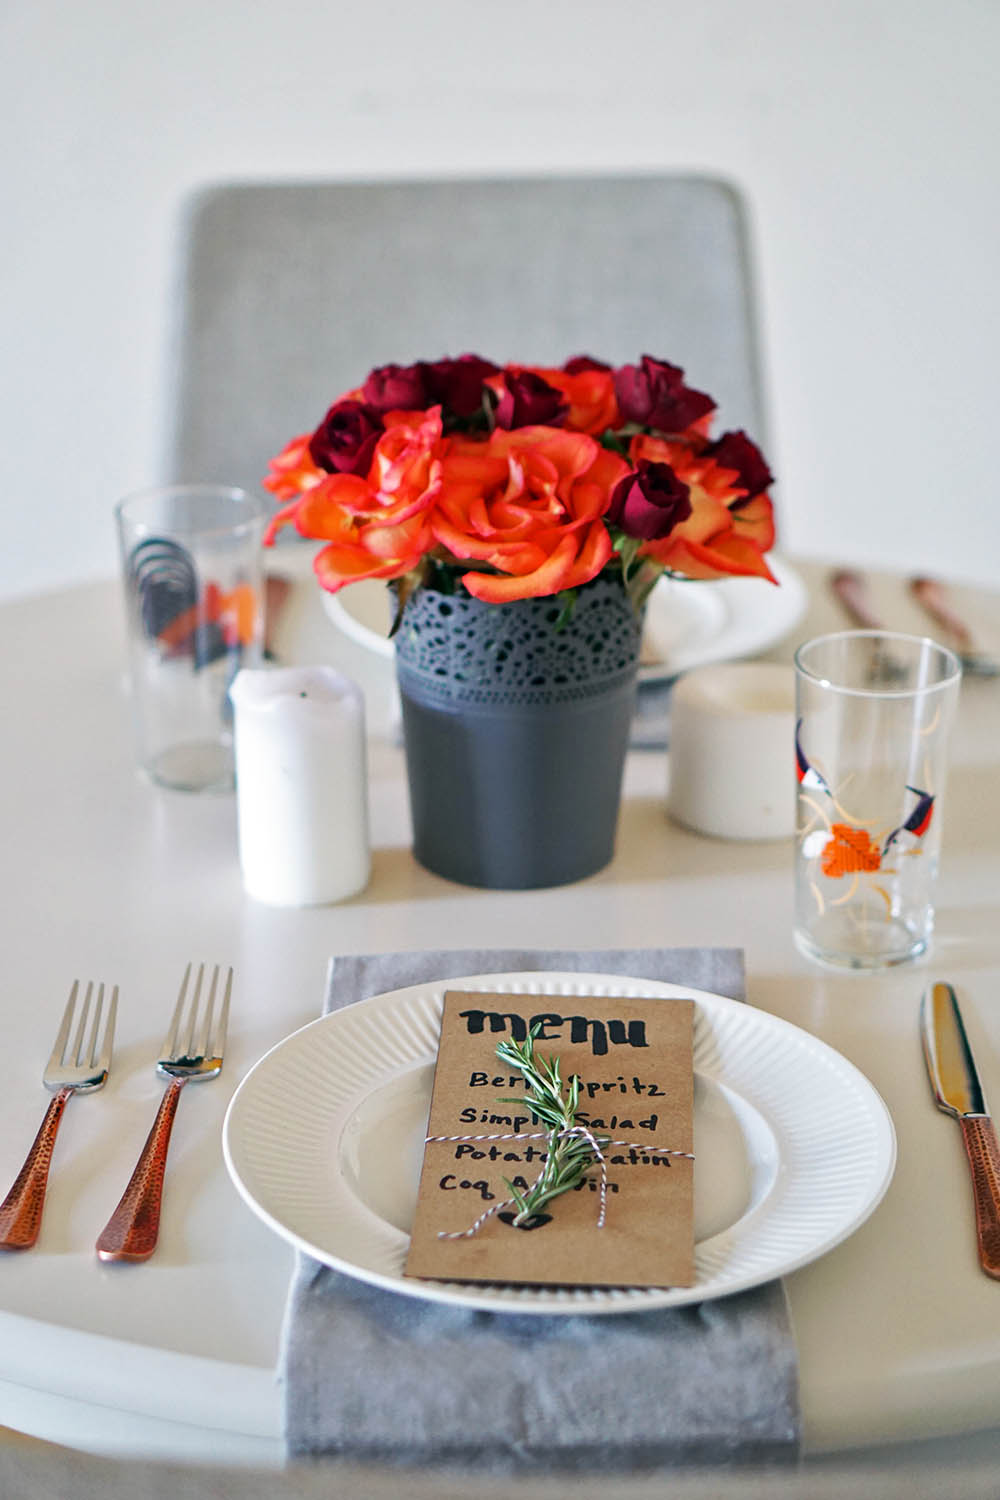 romantic table setting for two valentineu0027s day date ideas & TABLE FOR TWO: HOW TO CREATE A ROMANTIC TABLE SETTING - You Must ...